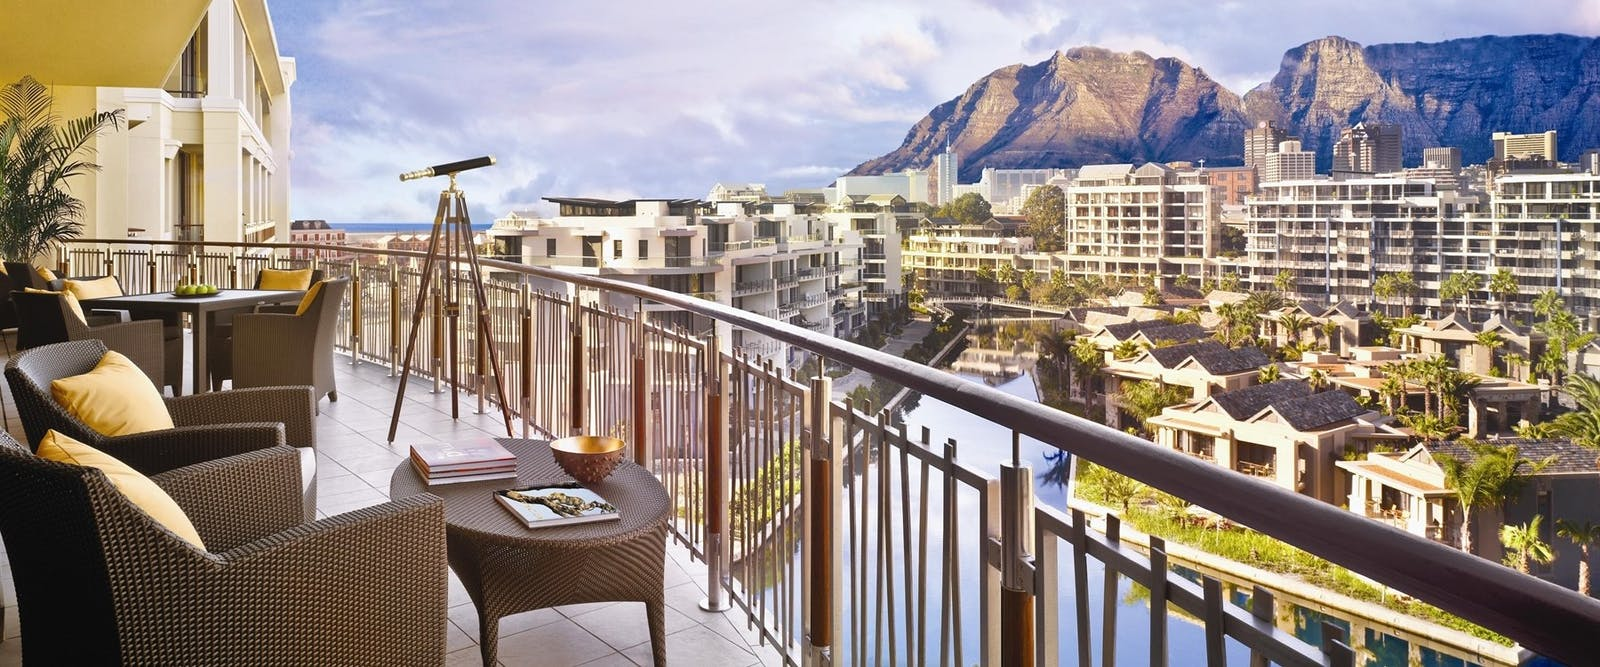 Table Mountain Suite Balcony View at One & Only Cape Town, South Africa